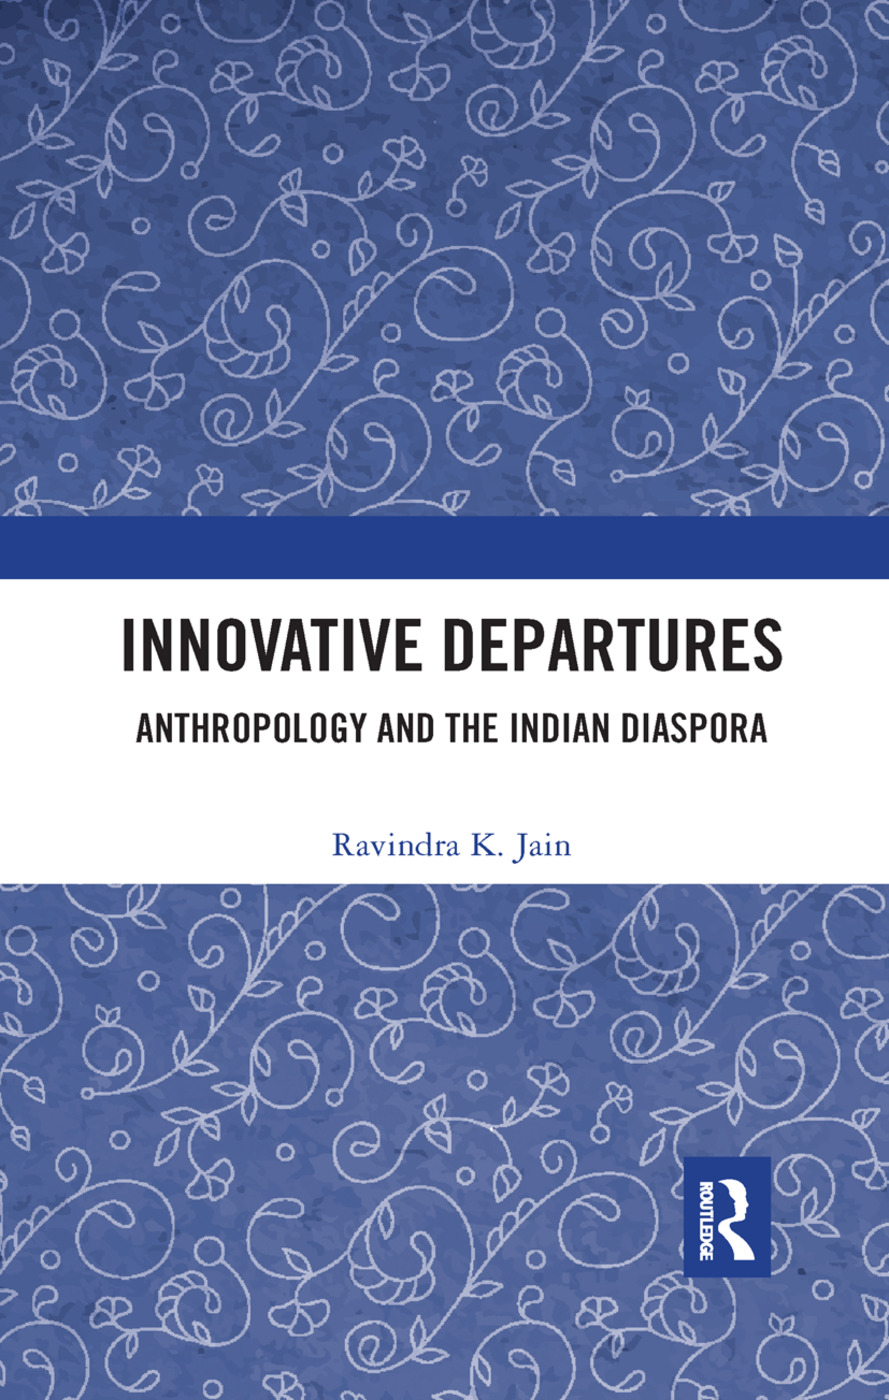 Innovative Departures: Anthropology and the Indian Diaspora book cover